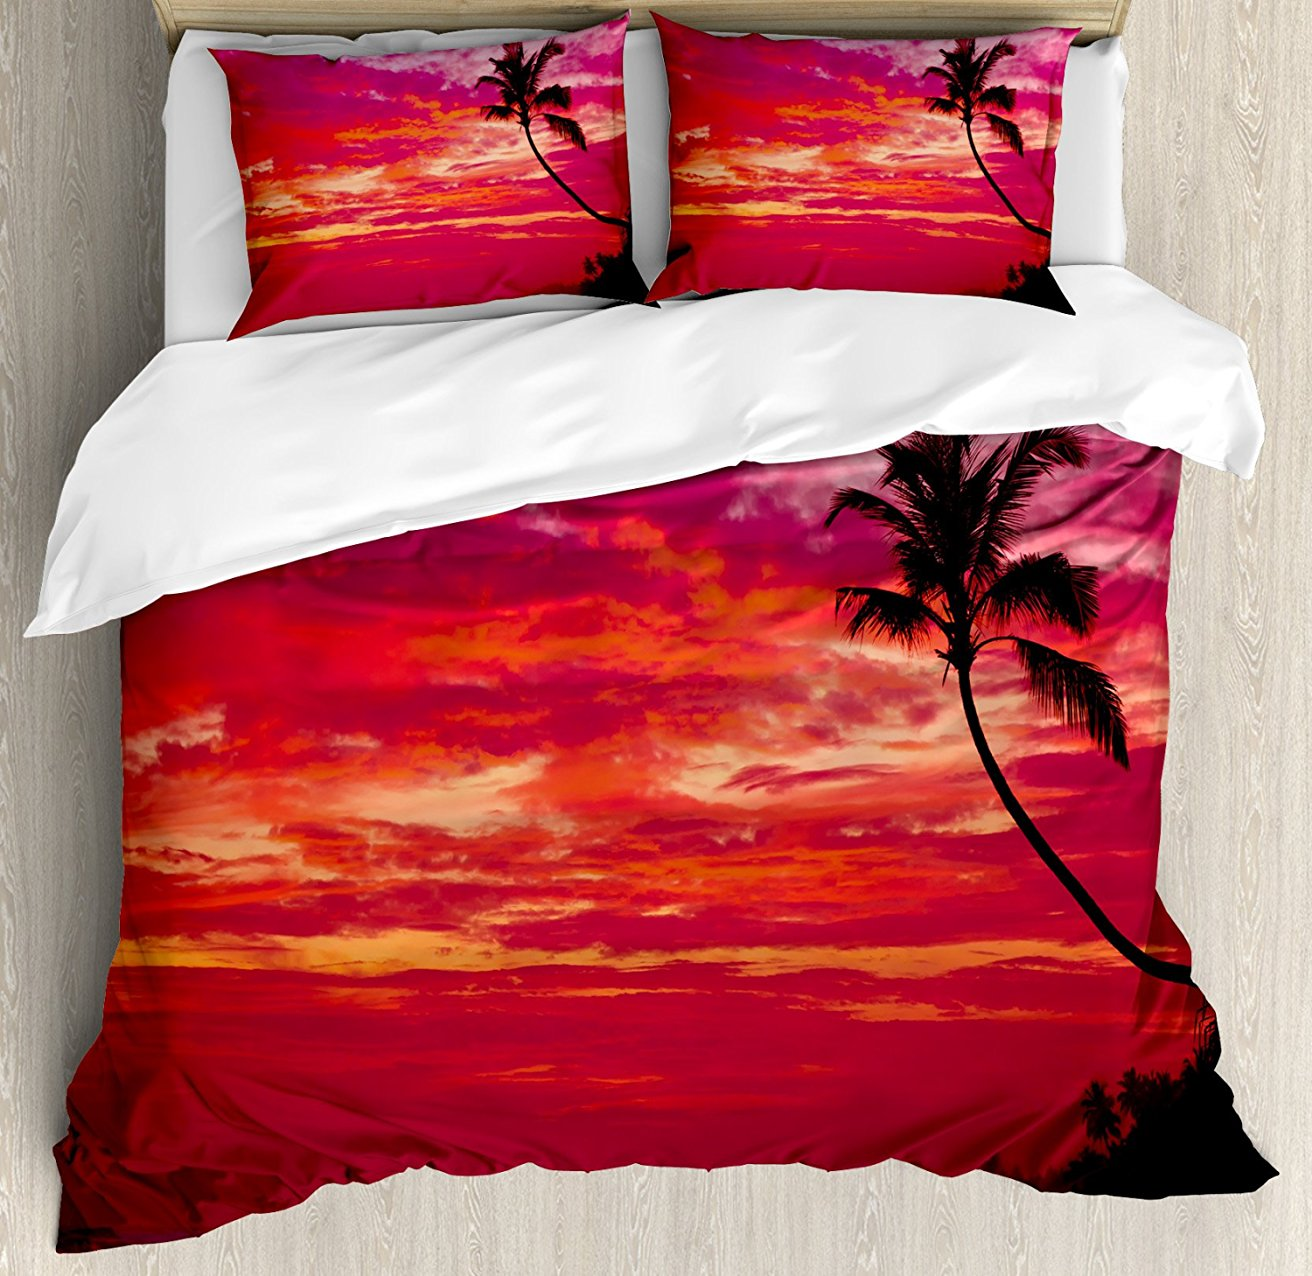 Duvet Cover Set, Sunset View from a Tropical Island Beach with Silhouette of Palm Tree on the Shore Print, 4 Piece Bedding Set